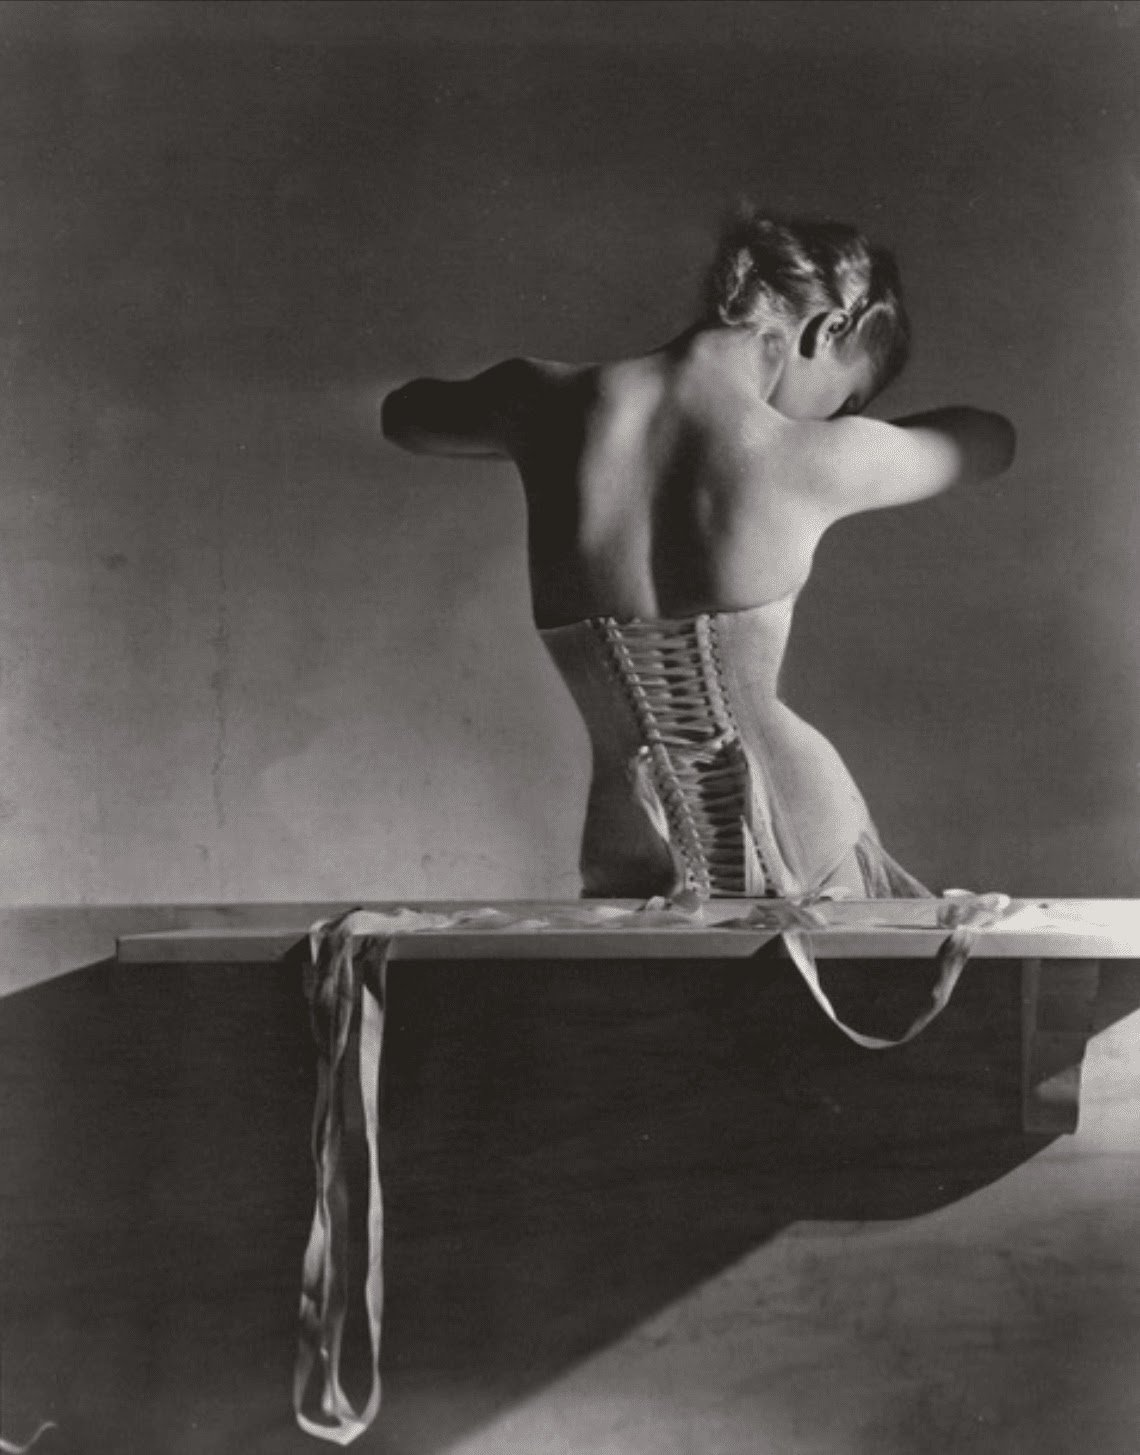 Horst P. Horst Mainbocher Corset—Variant (tight) 1939 (printed 1985‒1995) Platinum-palladium print Promised Gift of Sally Ross Soter Image courtesy of Holden Luntz Gallery